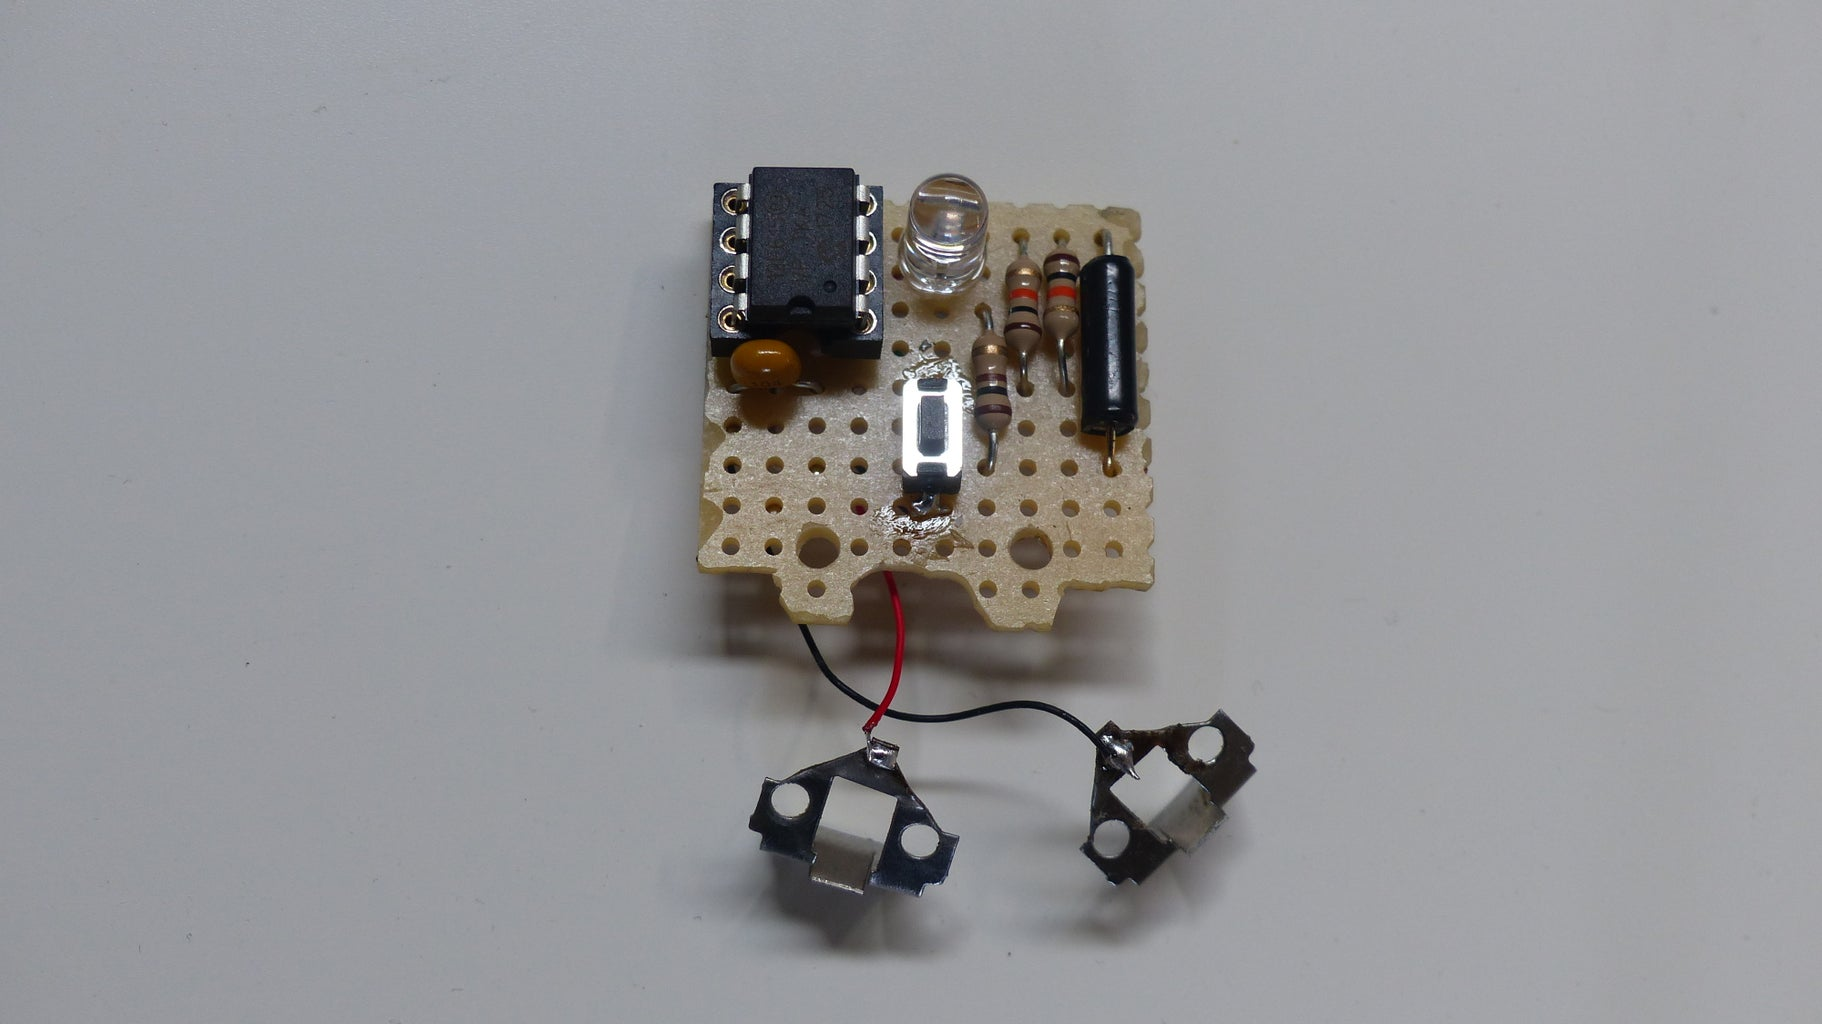 Designing and Building the Electronics